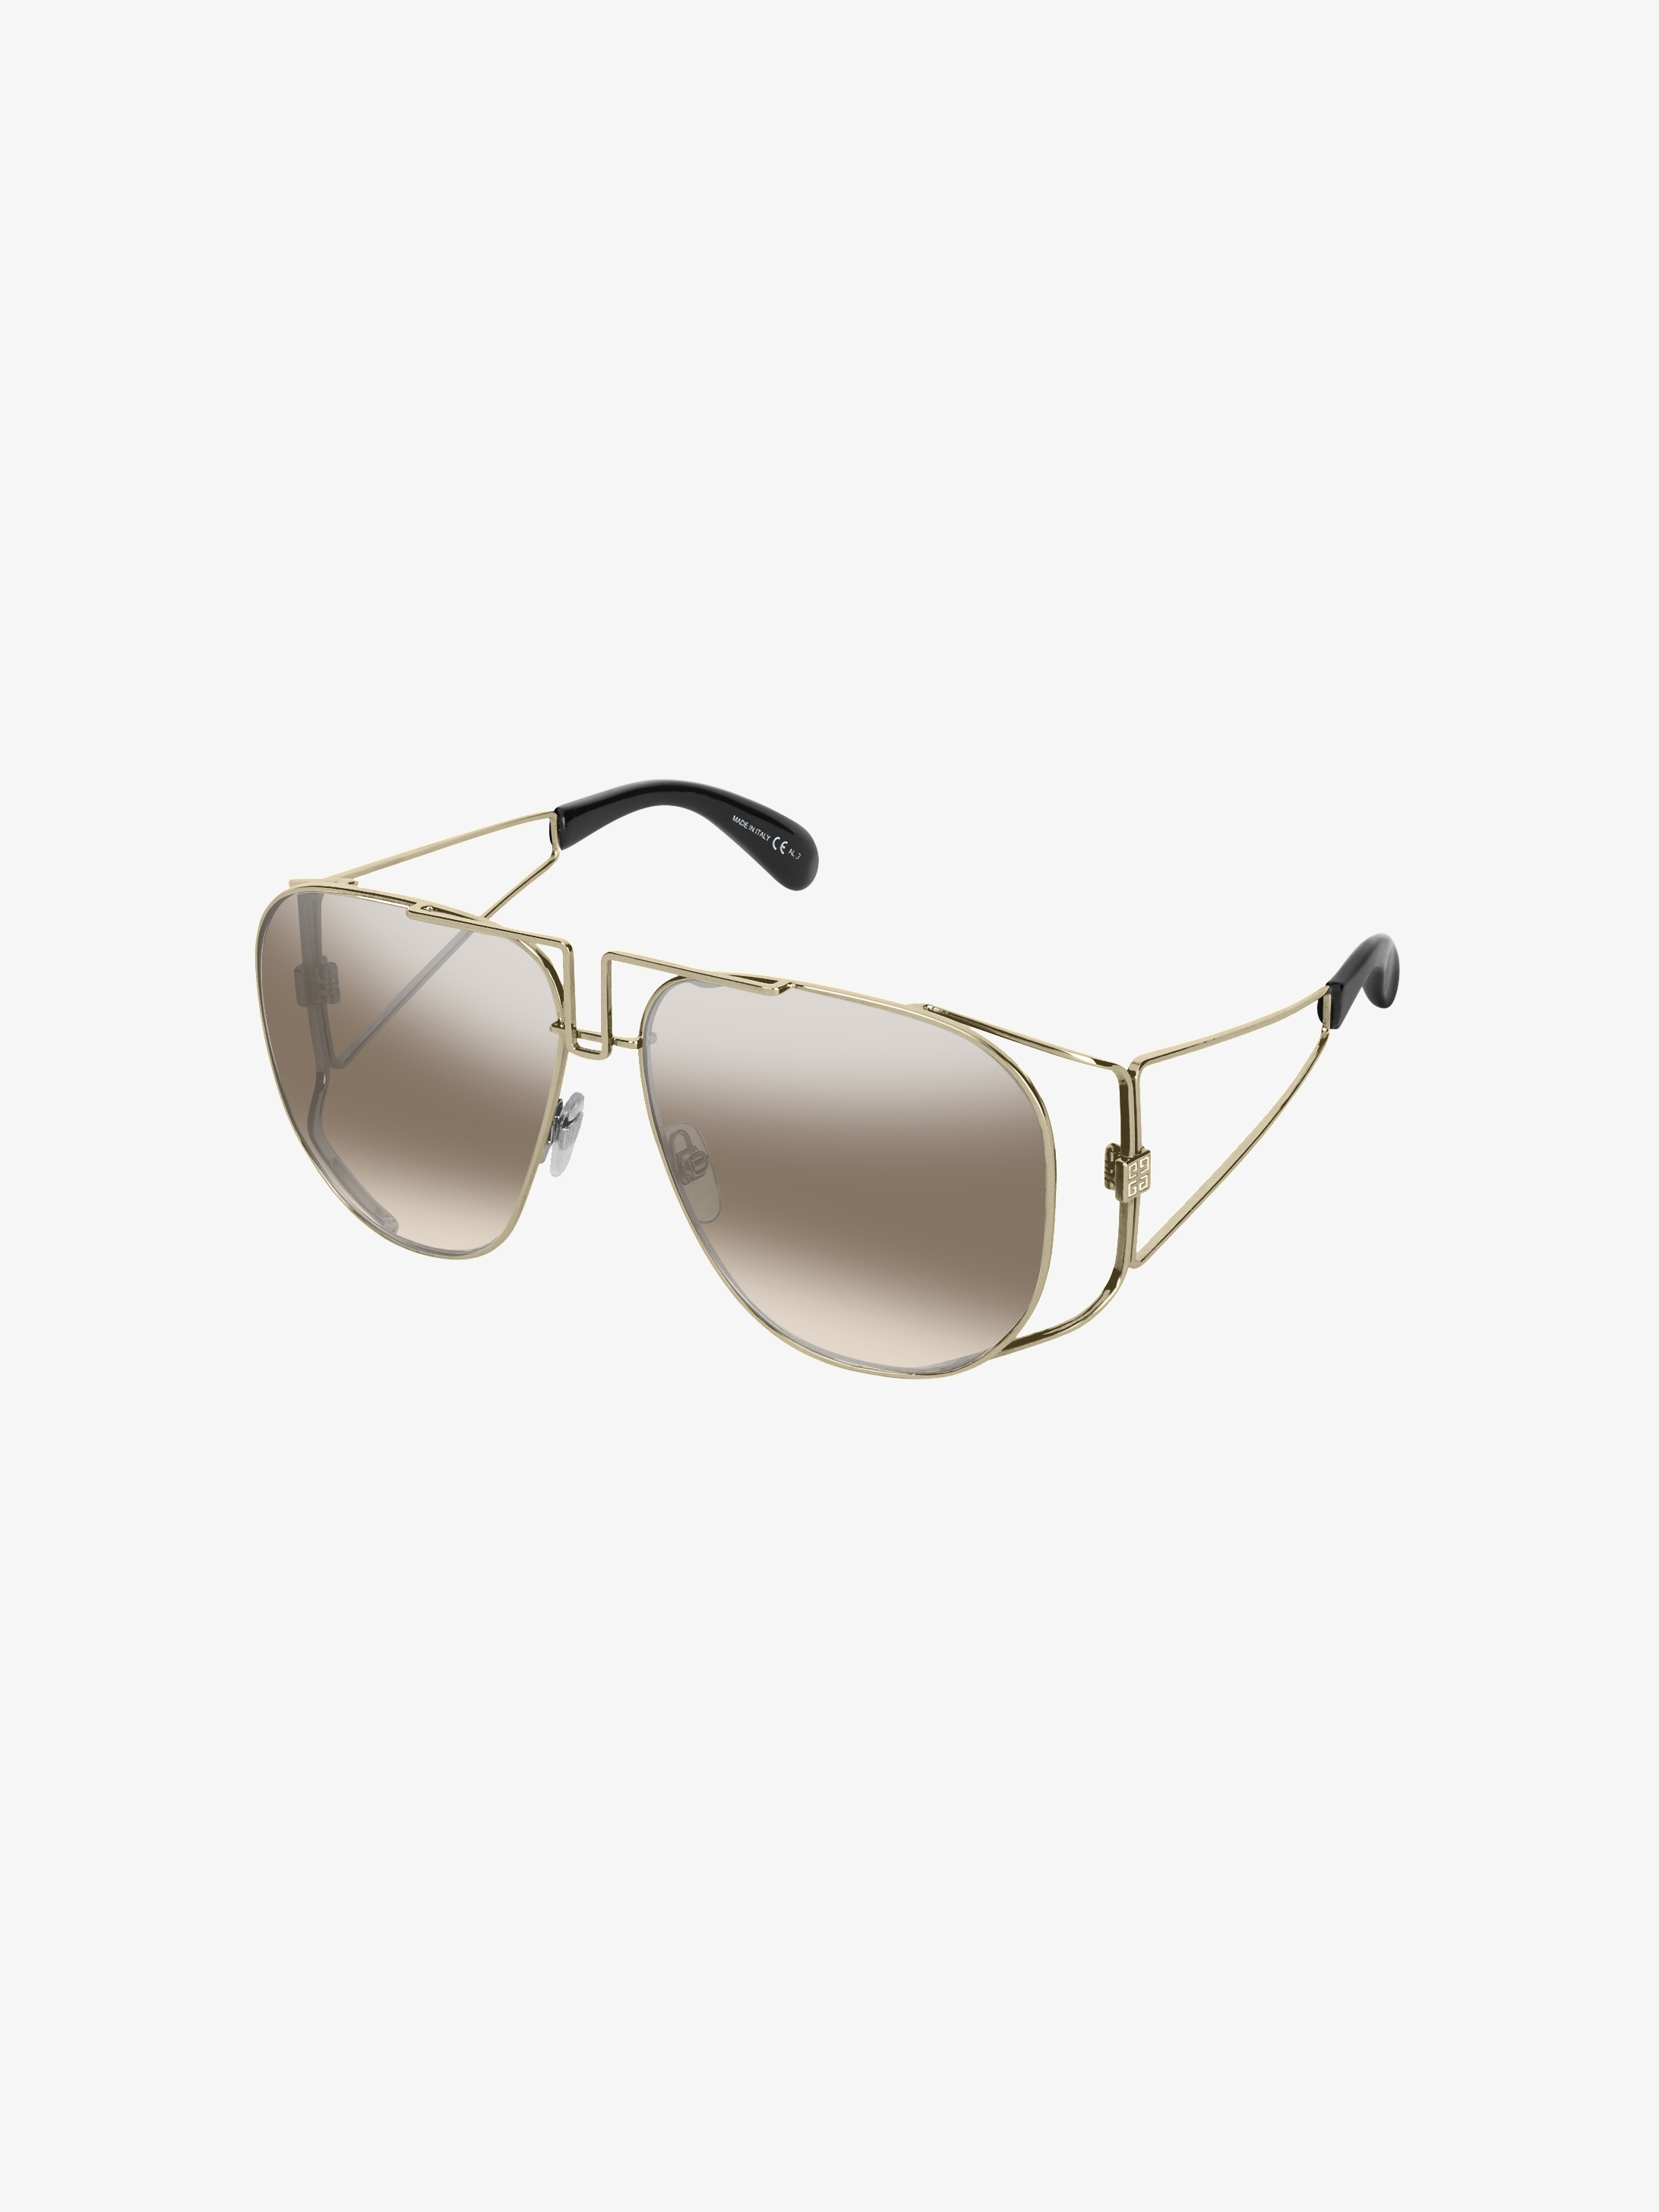 graphic sunglasses in acetate and metal